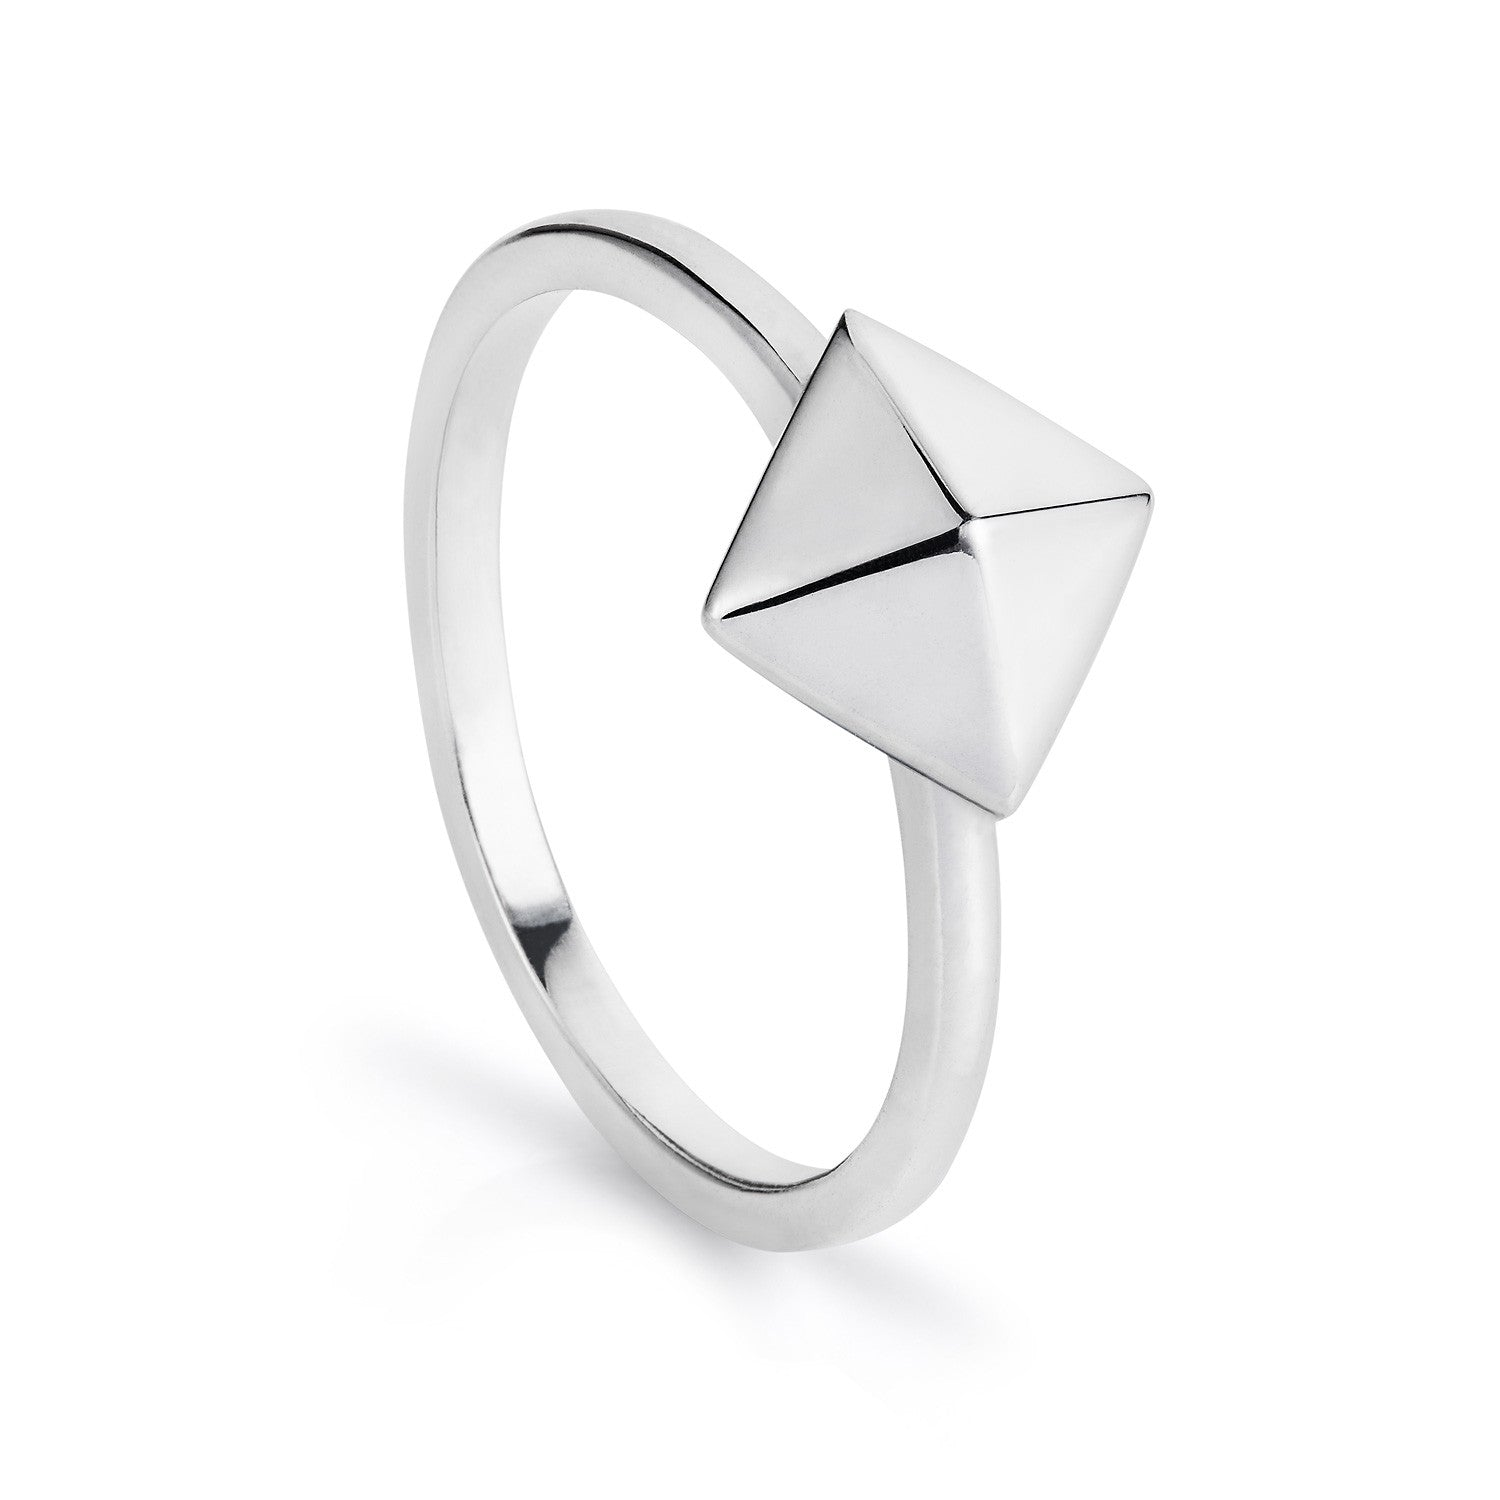 Silver Pyramid Ring-Rings-London Rocks Jewellery